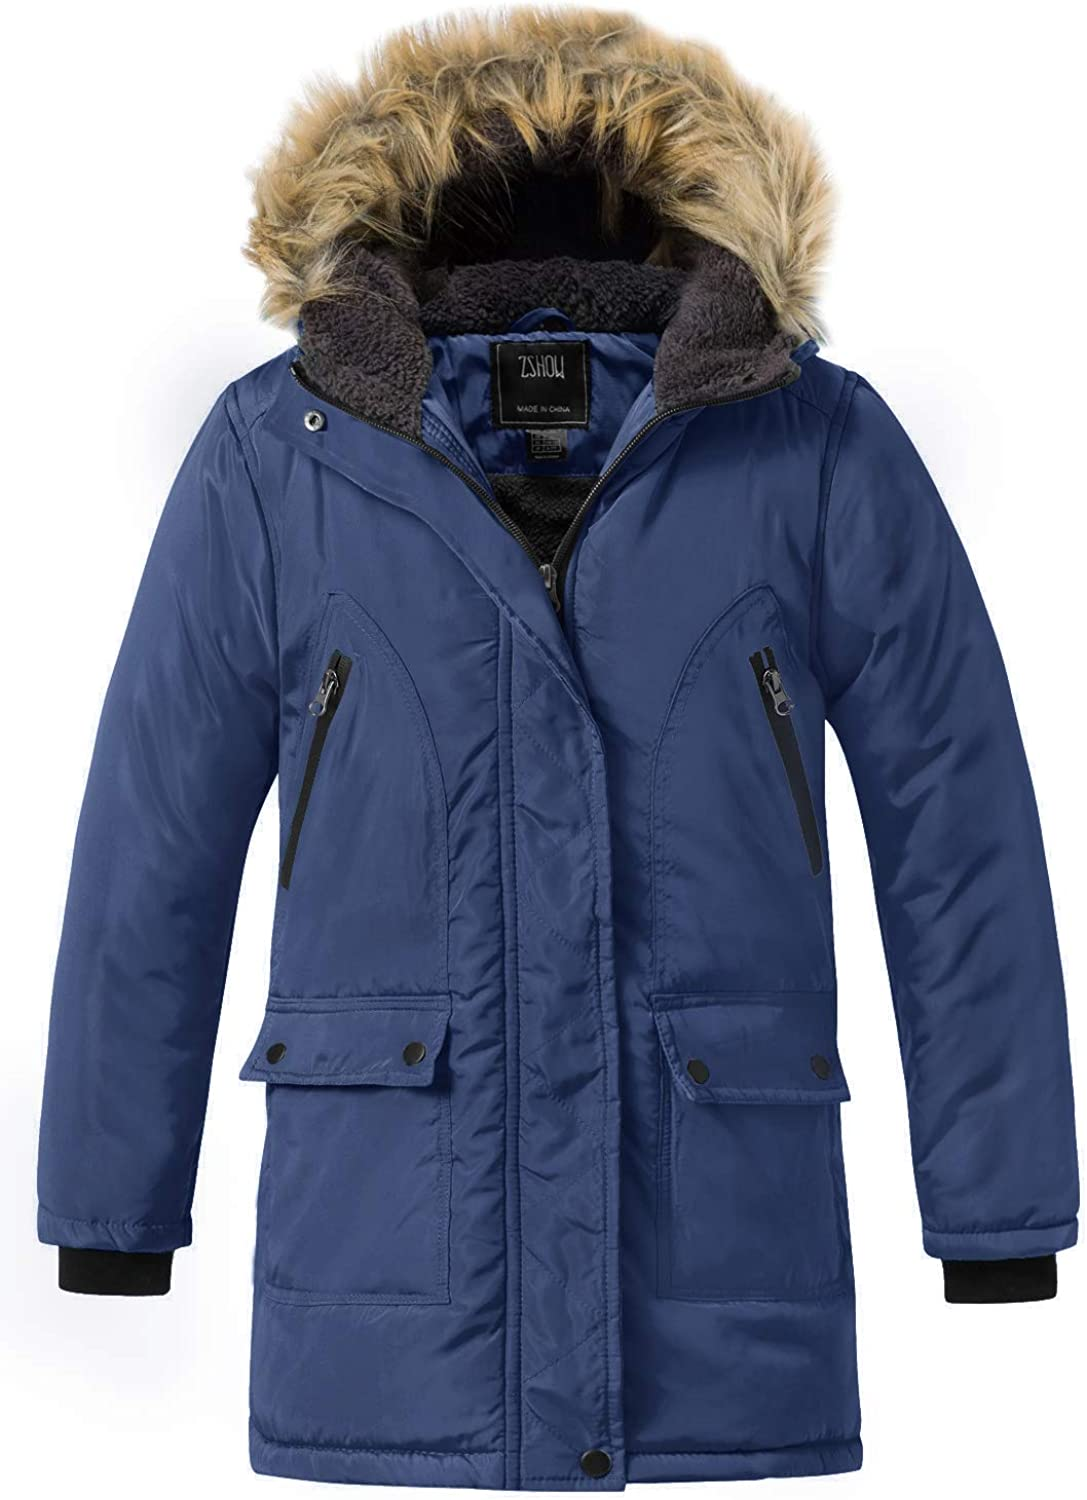 ZSHOW Girls' Winter Directly managed store Parka Coat Easy-to-use Warm Ja Padded Long Hooded Puffer